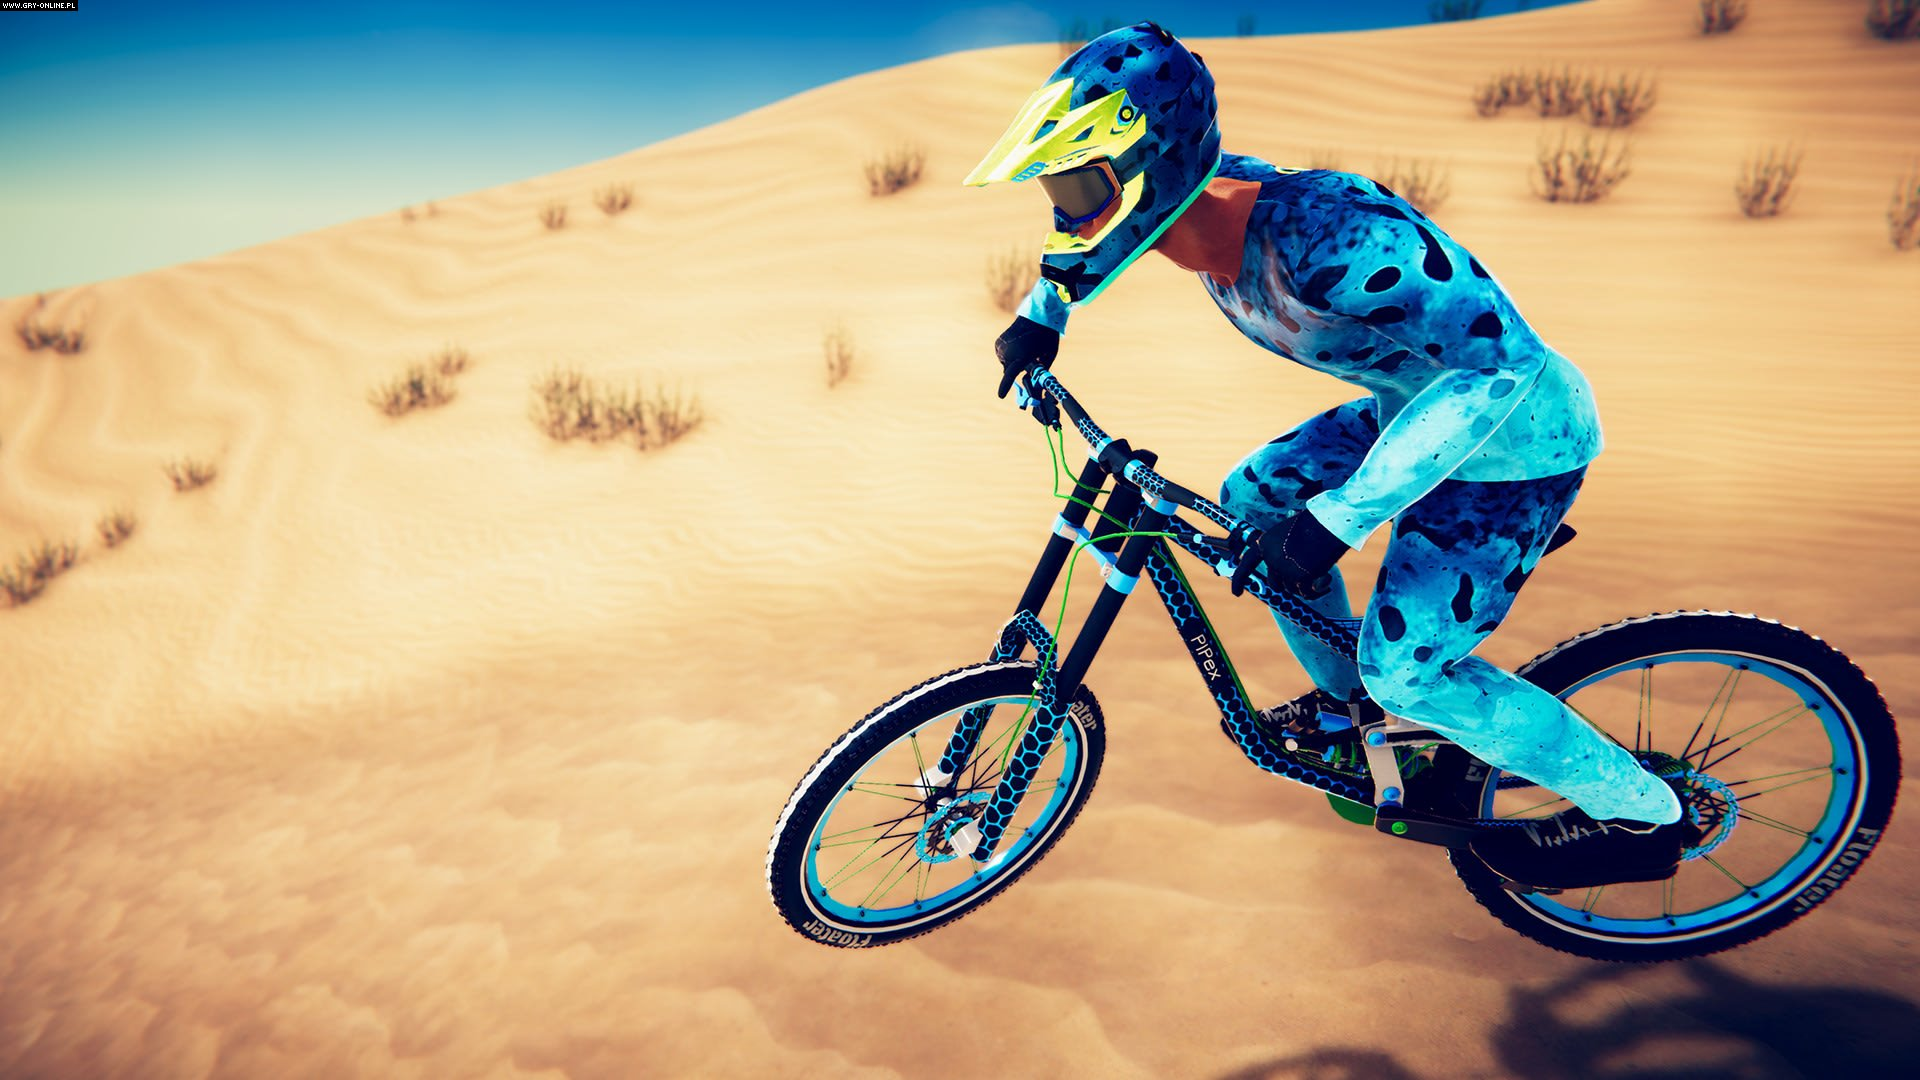 Descenders PC, PS4, XONE, Switch Games Image 1/23, RageSquid, No More Robots